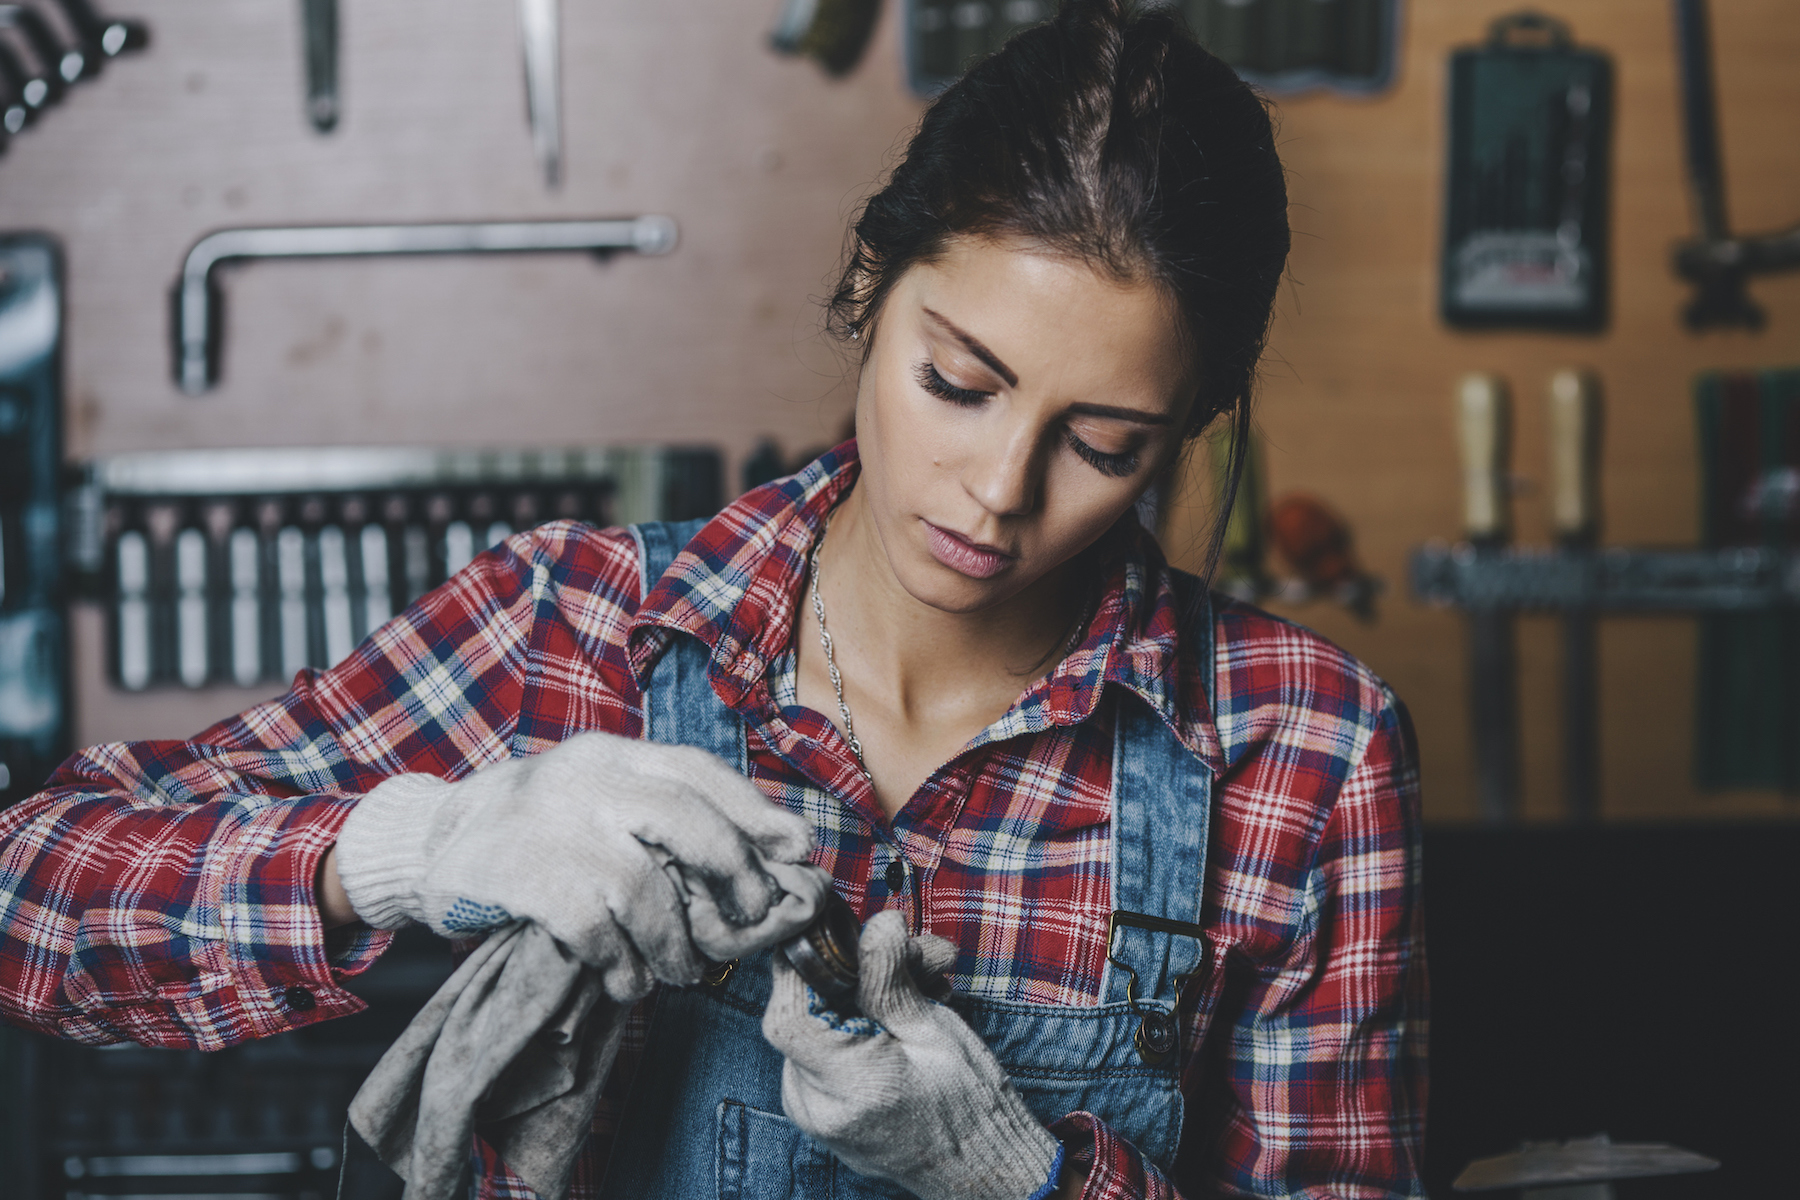 Woman mechanic cleaning metal part